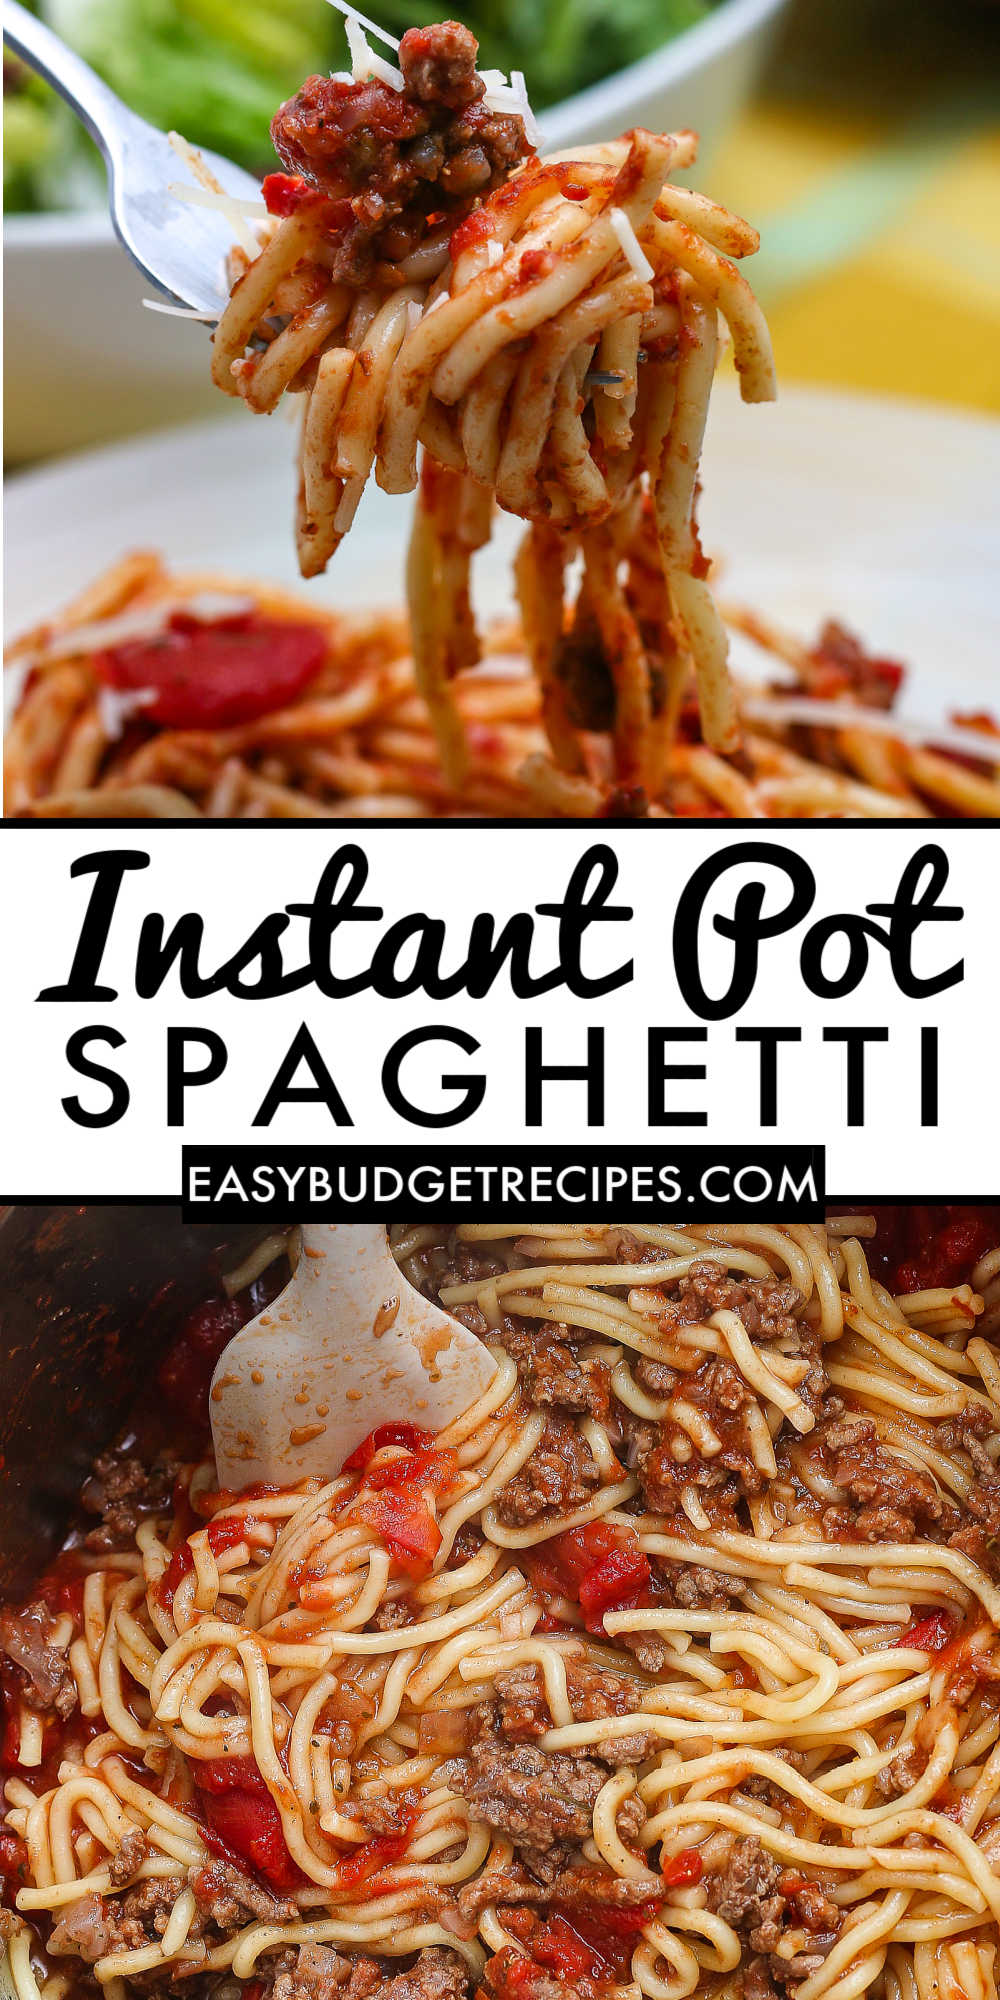 Our Instant Pot Spaghetti recipe is our easiest spaghetti recipe ever! It's a quick recipe for spaghetti and meat sauce made right in the instant pot! via @easybudgetrecipes